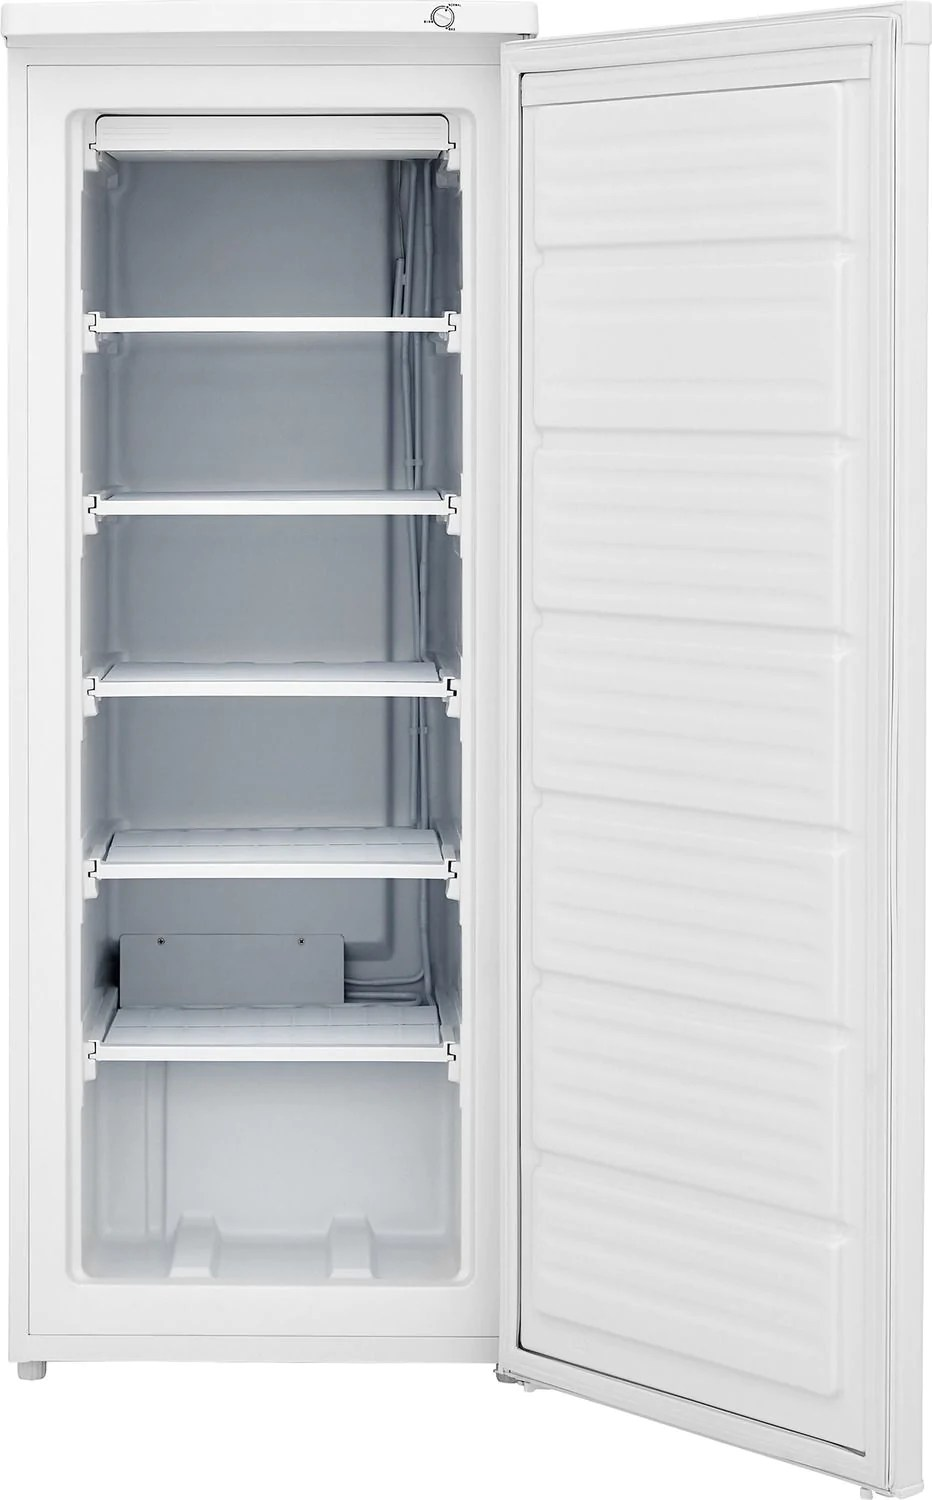 Frigidaire Upright Freezer 5 8 Cu Ft White Leon S